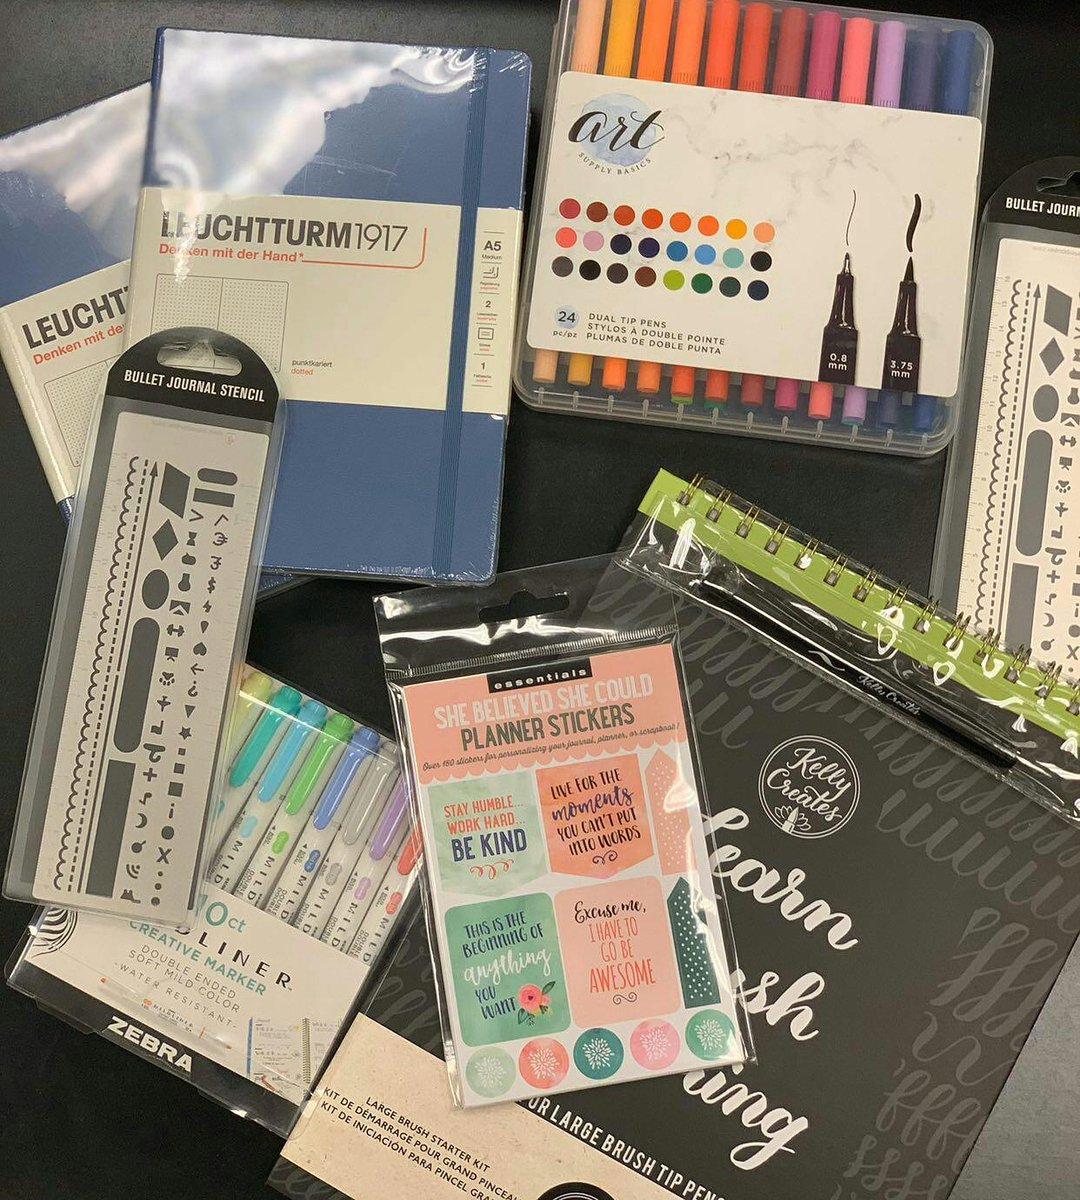 We have all the essentials to start the year with #bulletjournaling! Come on by to check out all our different options